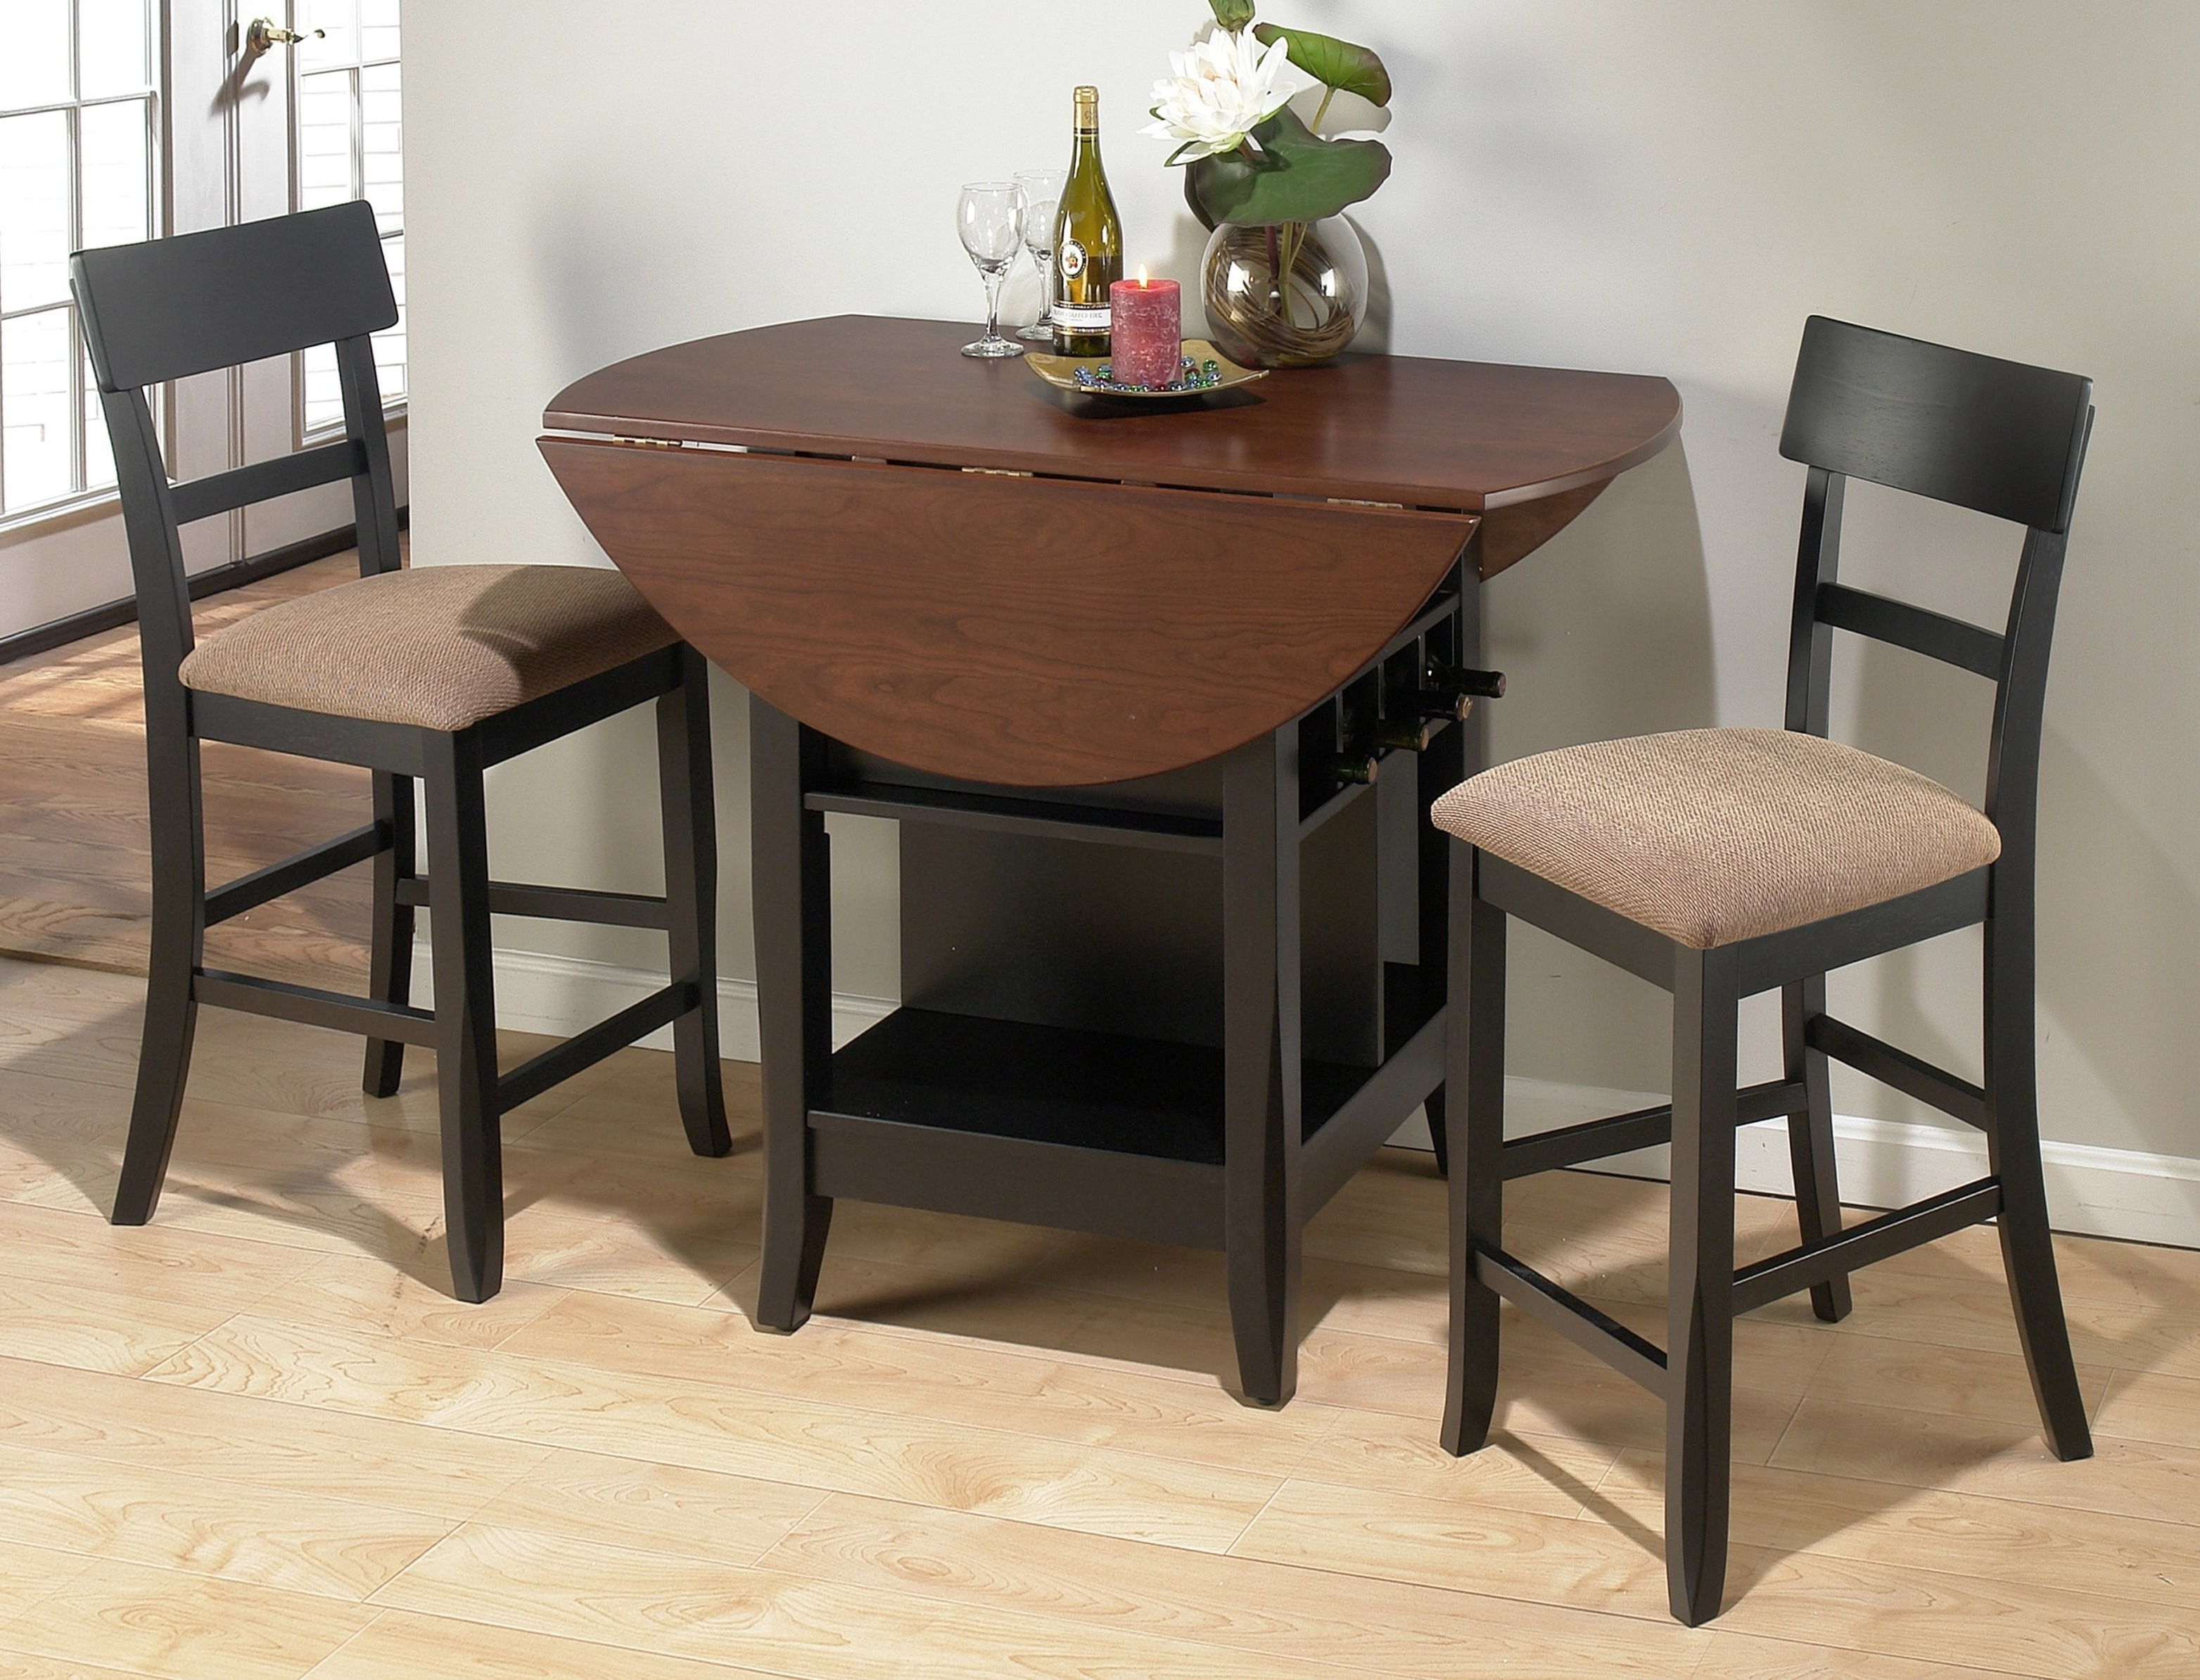 Two Person Dining Tables With Well Known 2 Person Dining Table Set Inspirational Buy Montblanc Counter Height (View 9 of 25)